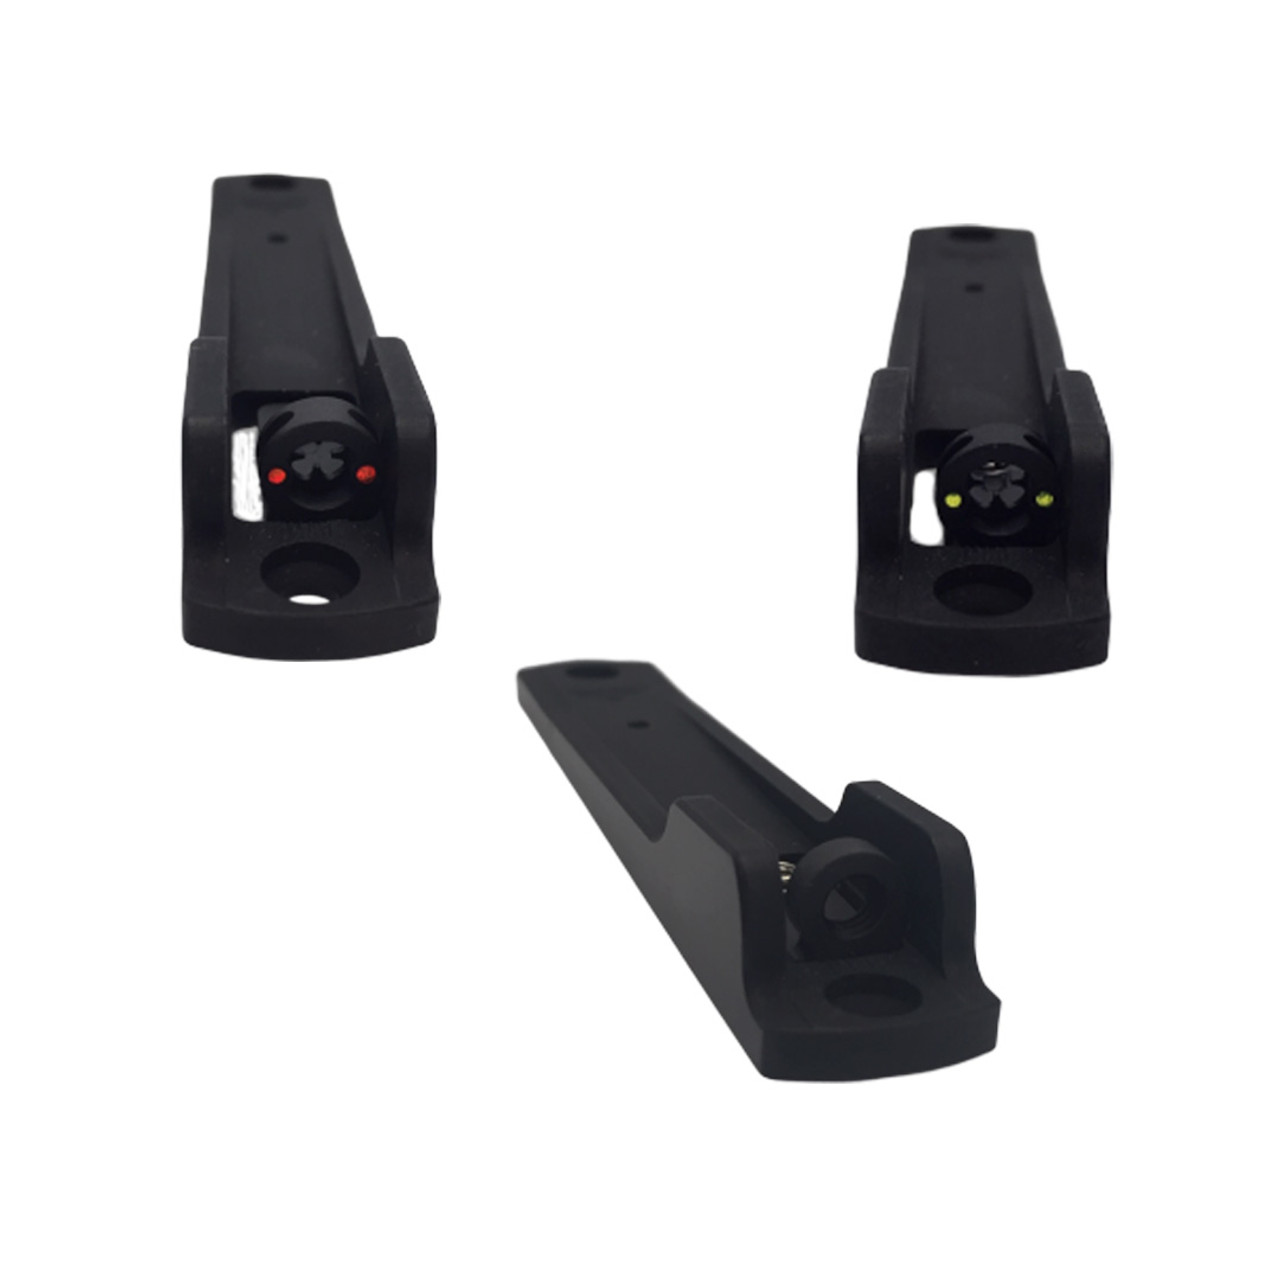 Marlin 39A Receiver Peep Sights, Ruger 10/22, Receiver Peep Sights, Peep Sights, Marlin 39A peep sight, Ruger 10/22 peep sight, Marlin 39A peep sight, fiber optic sights